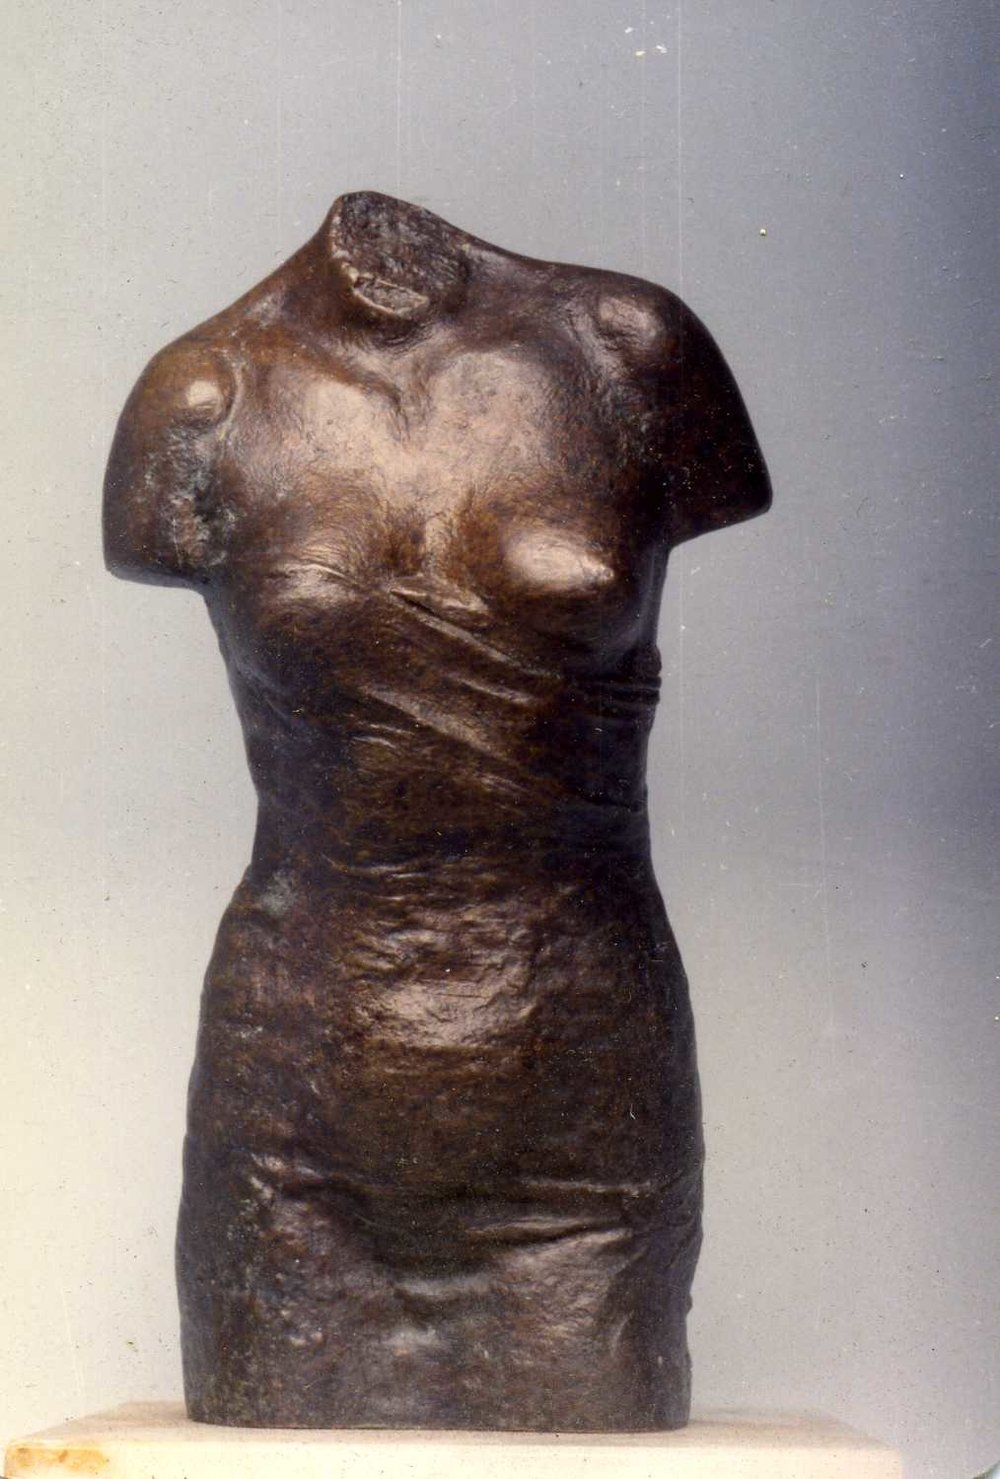 Small Draped Female Torso